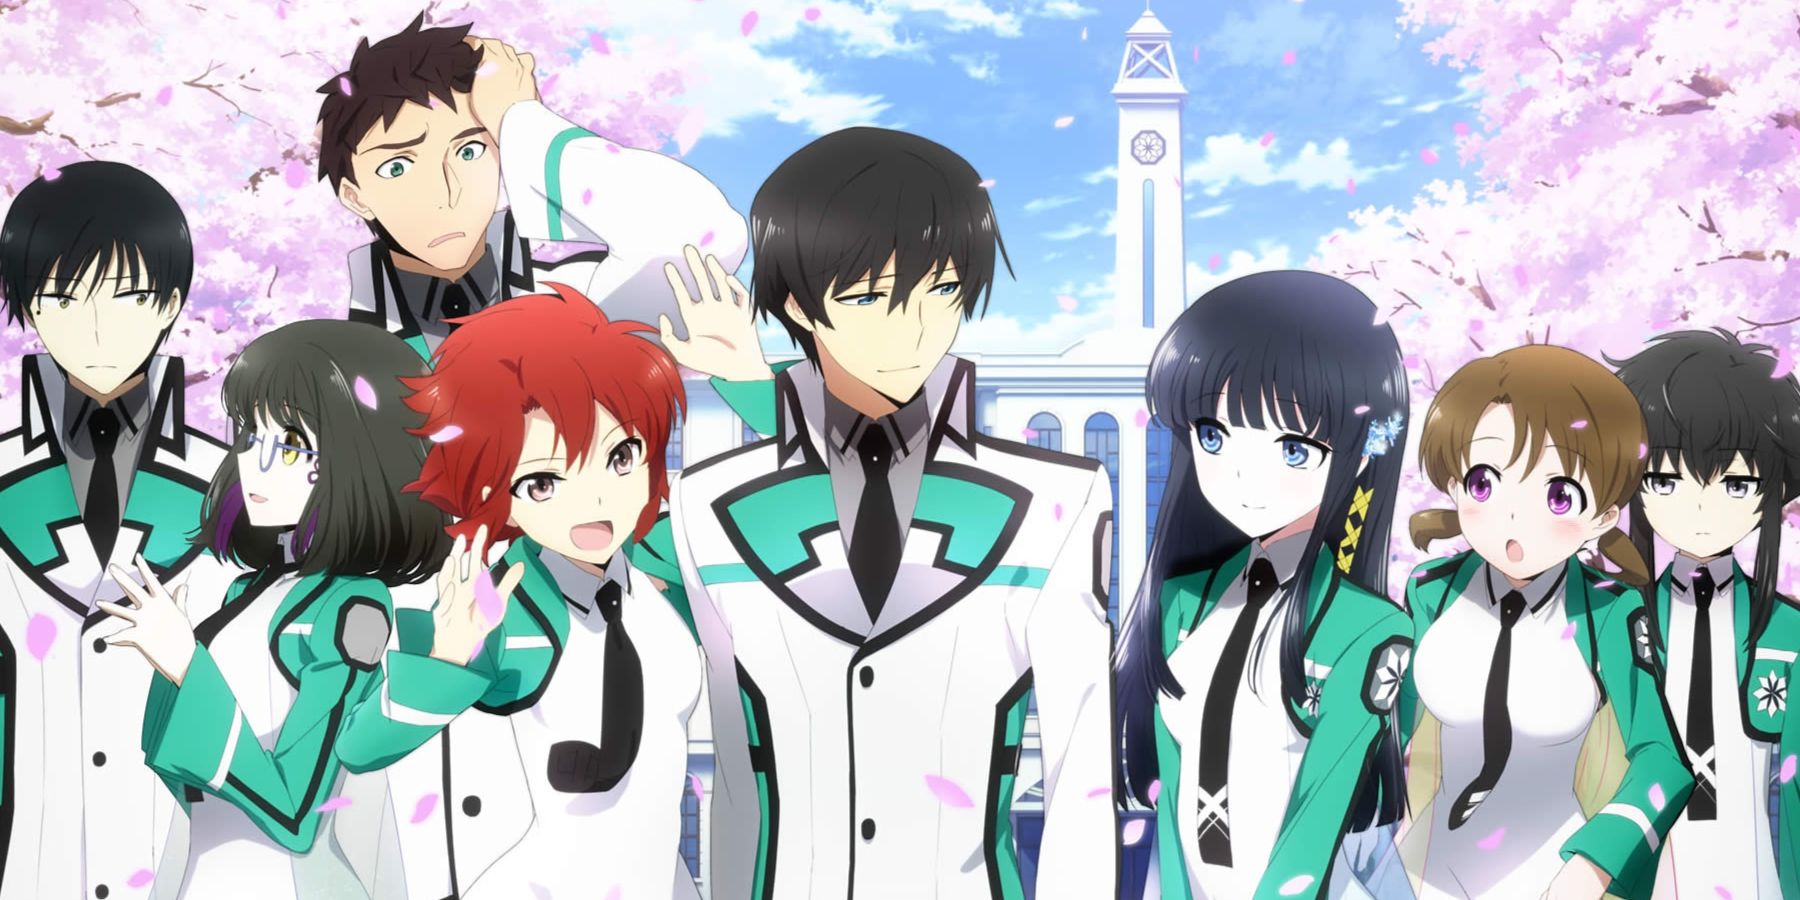 Irregular at Magic High School: Here Is What The Future Holds For This Anime Series